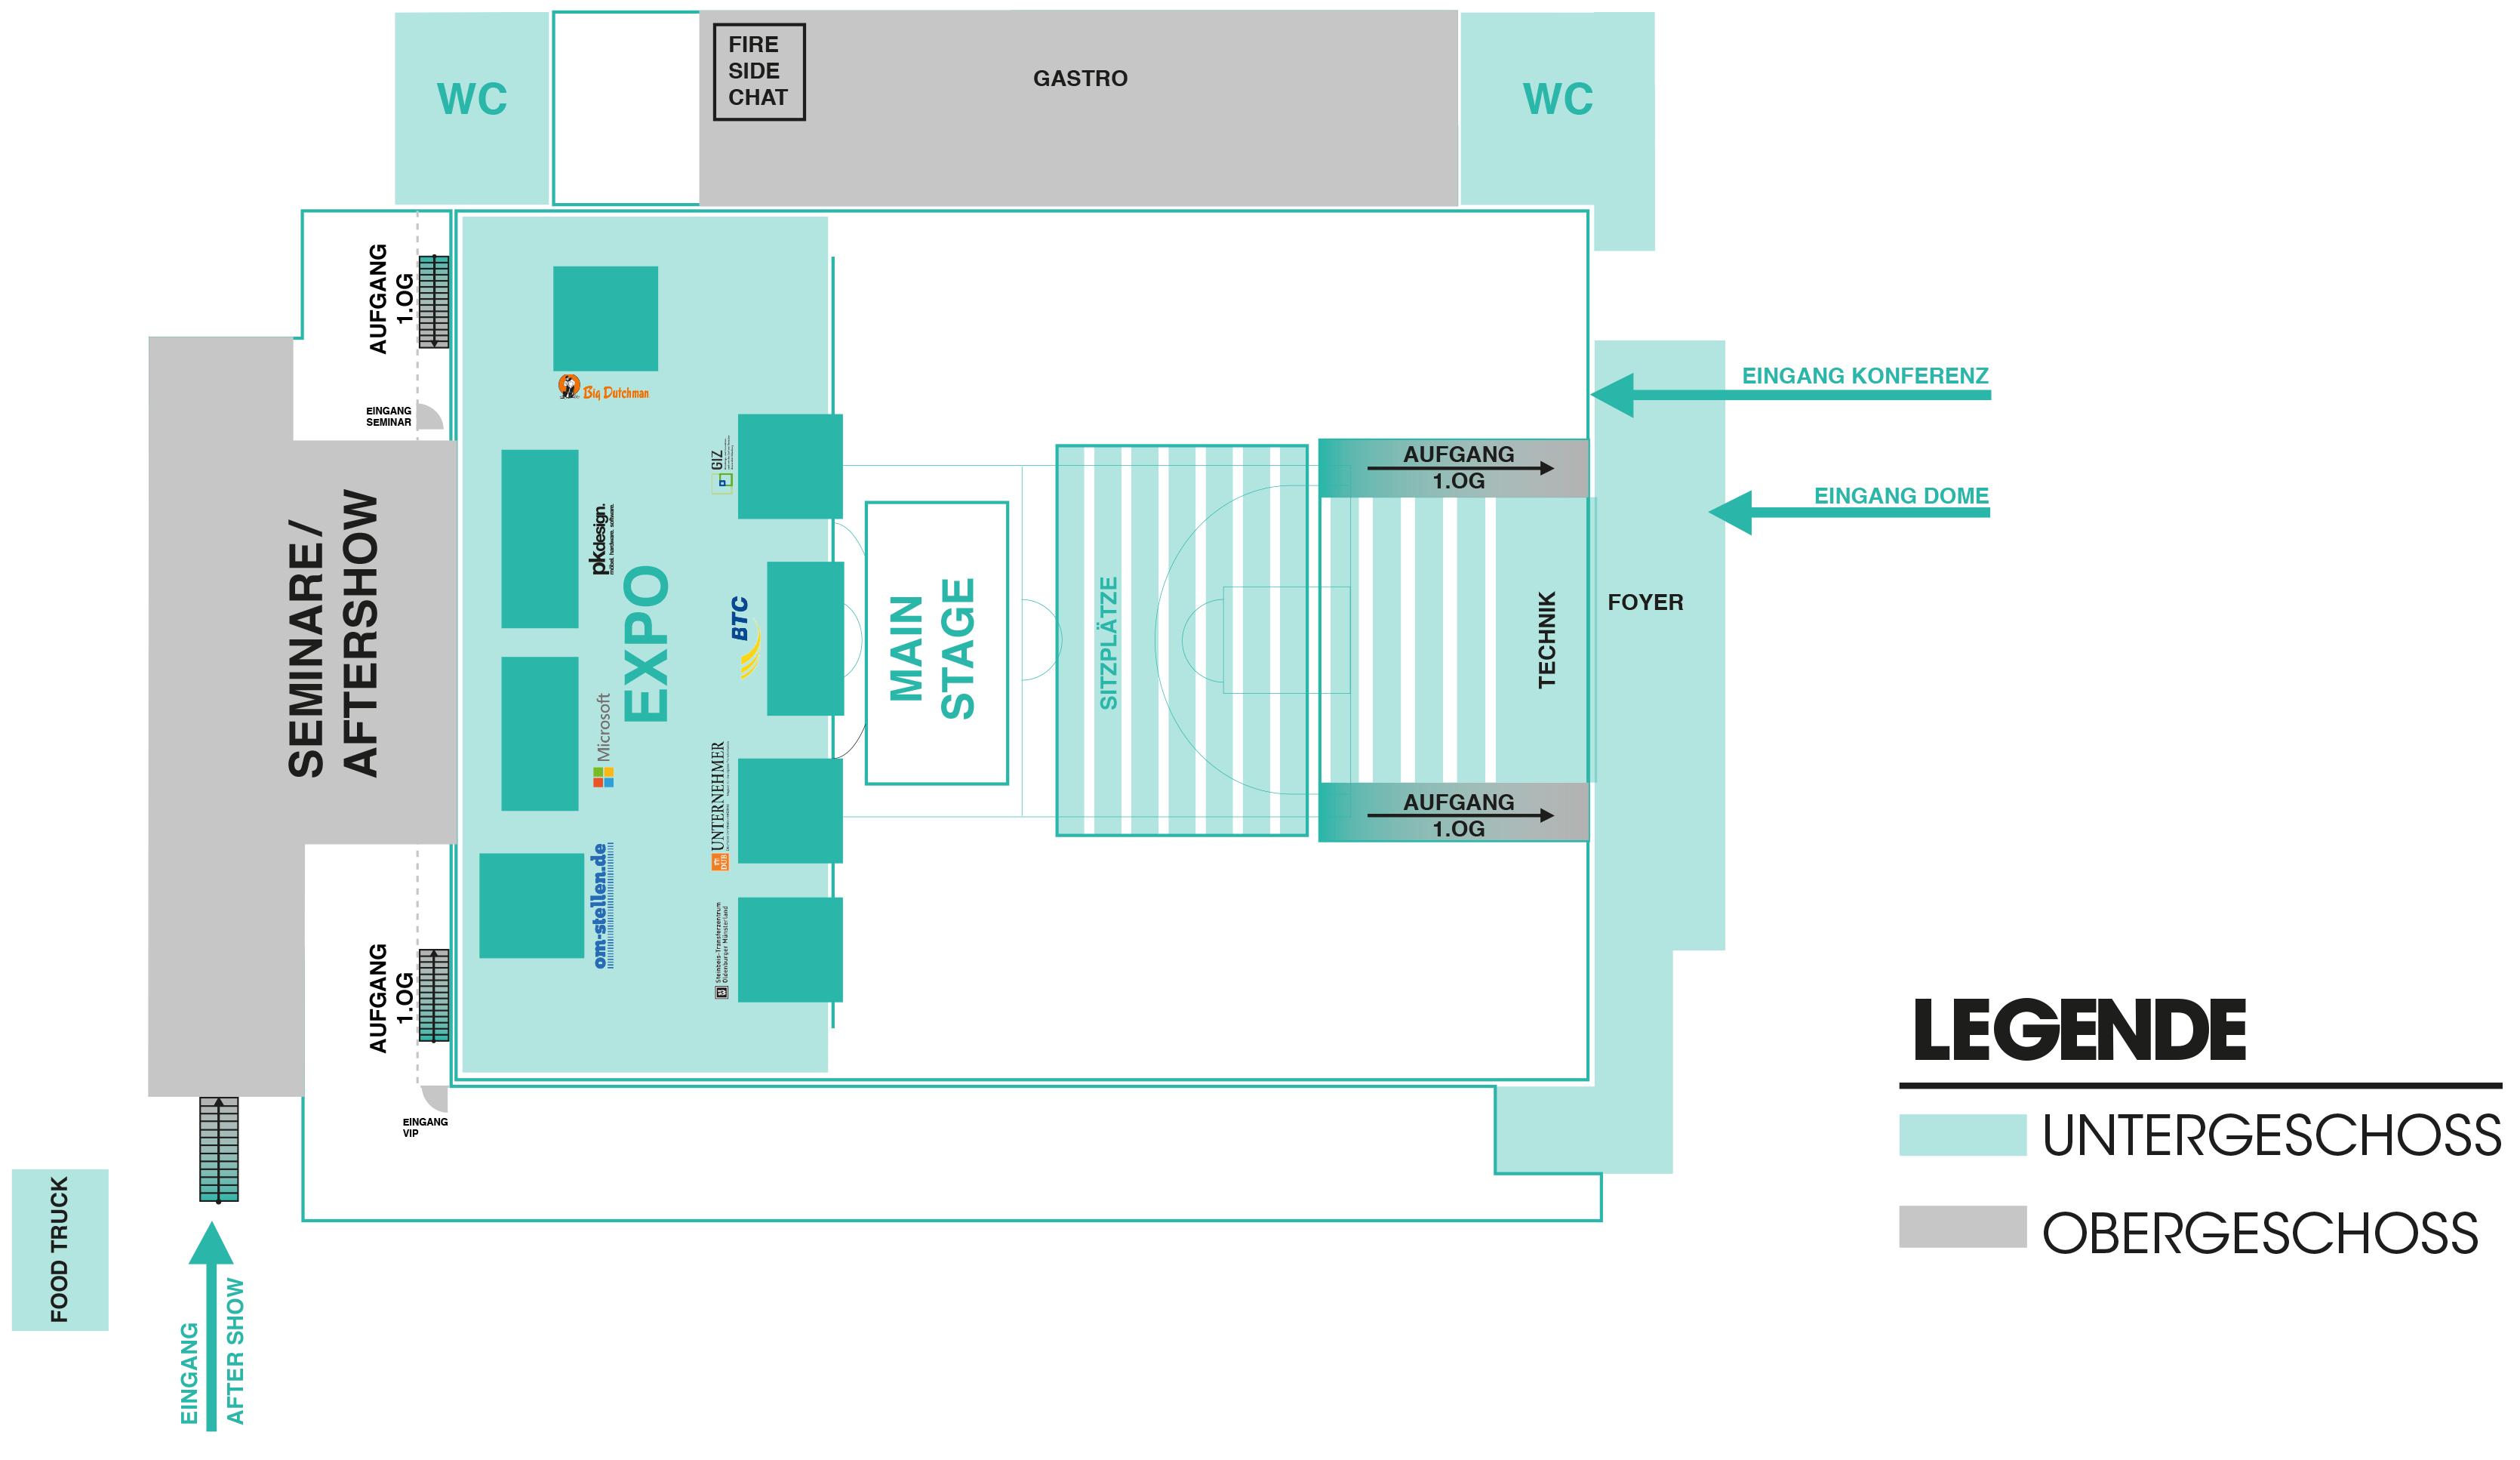 Floorplan der Villagecon 2018